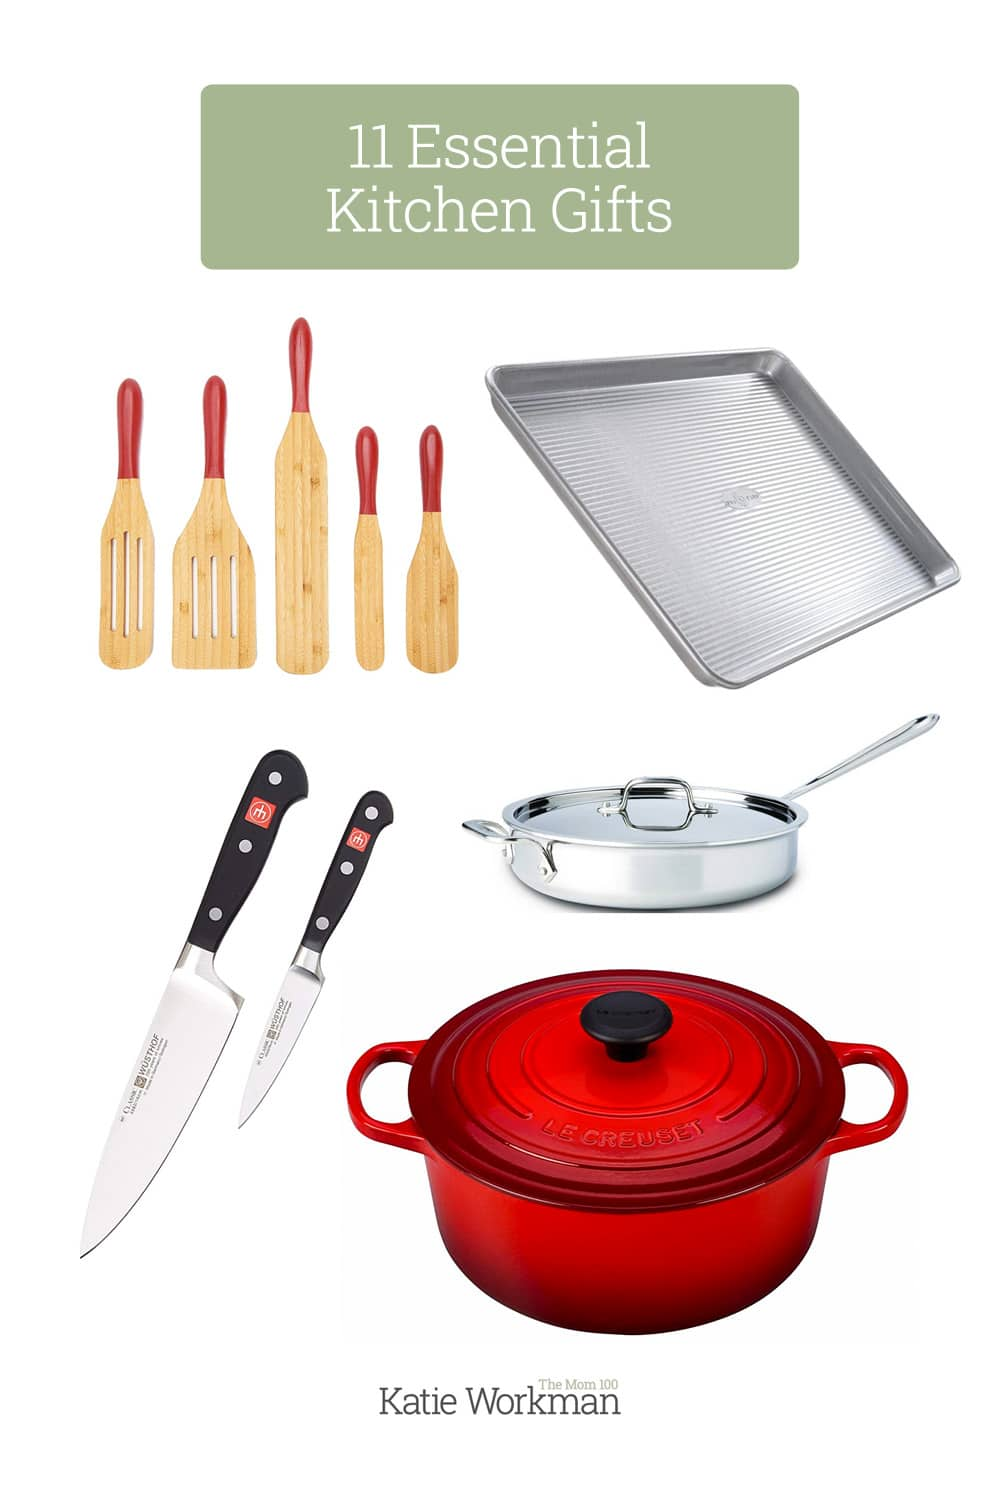 11 Essential Kitchen Gifts for the Holidays 2020